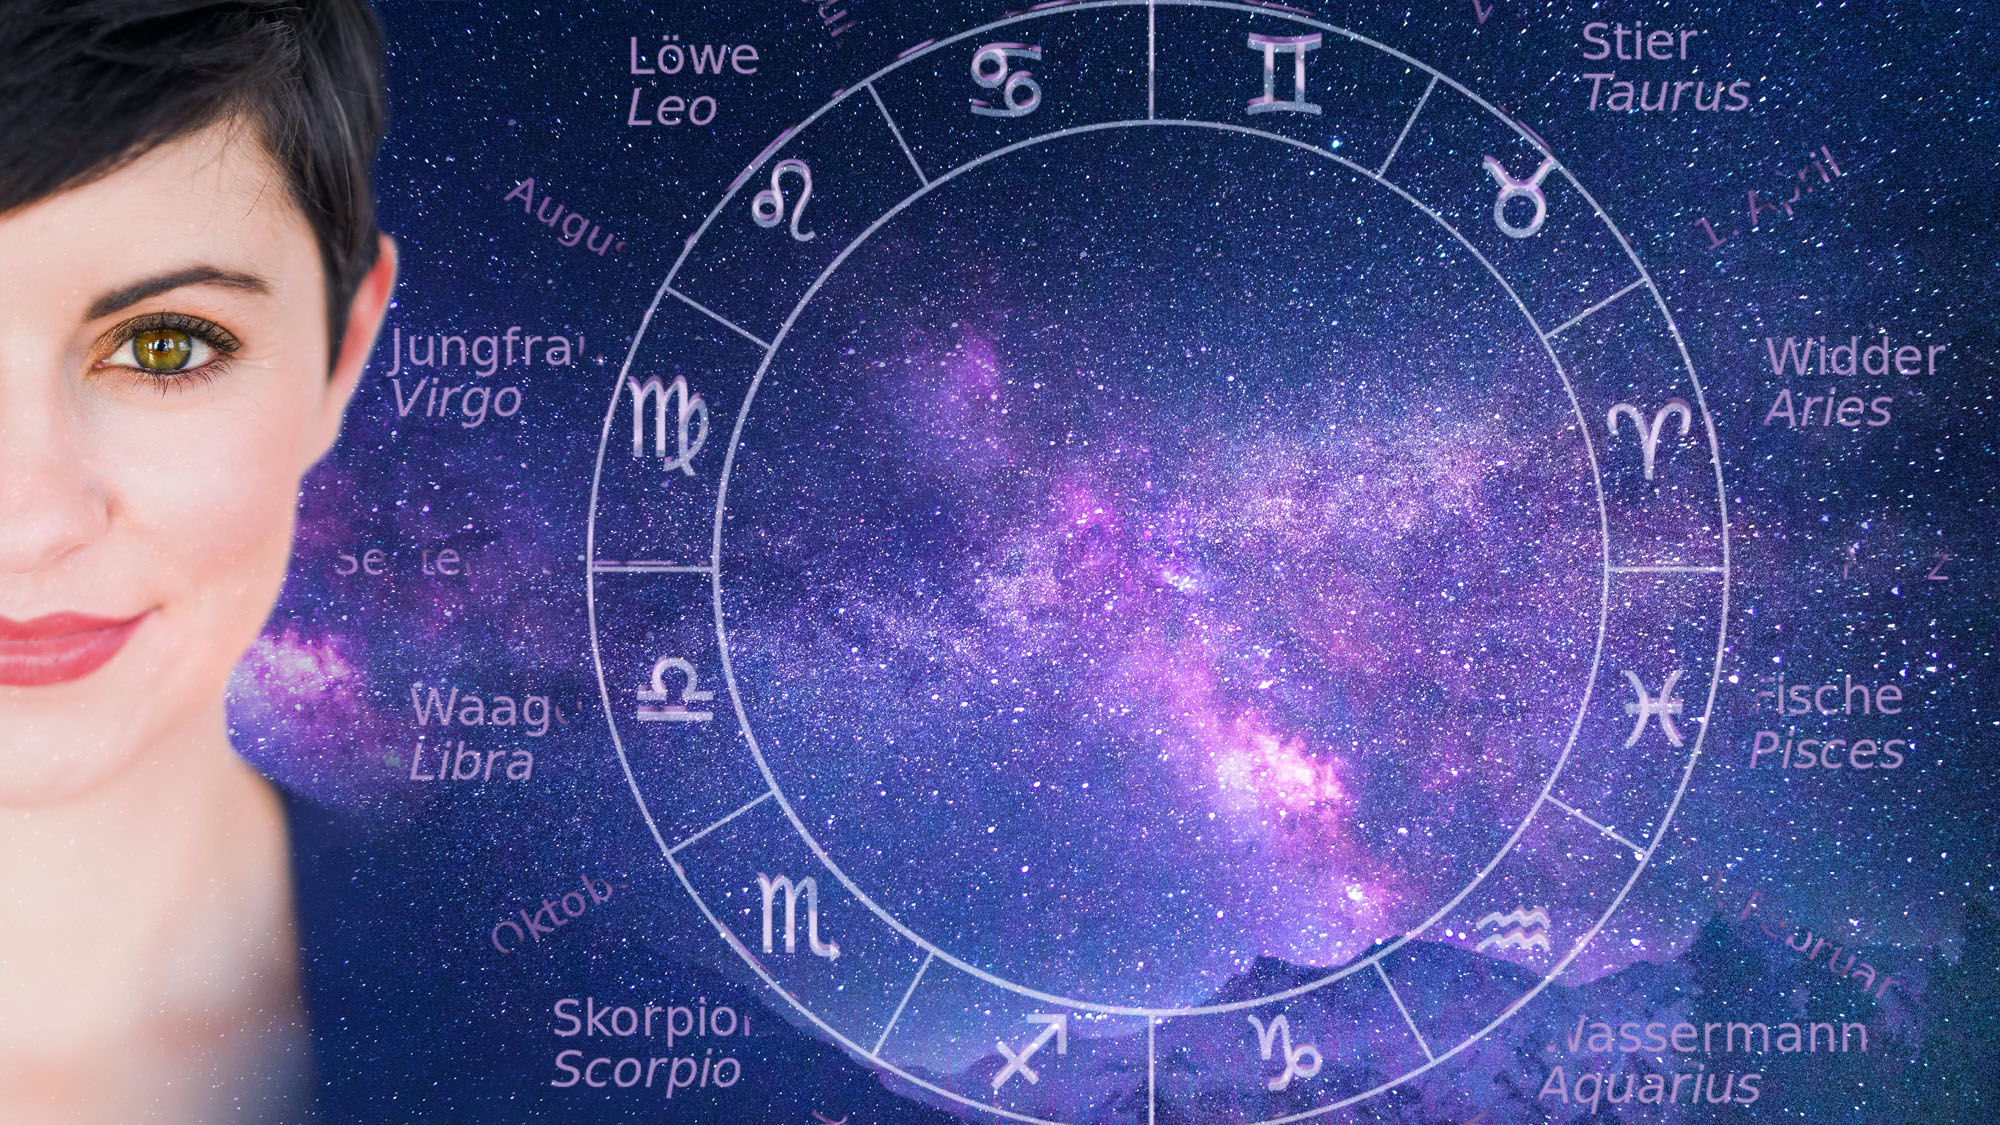 Your Best Instagram Strategy Based on Your Zodiac Sign